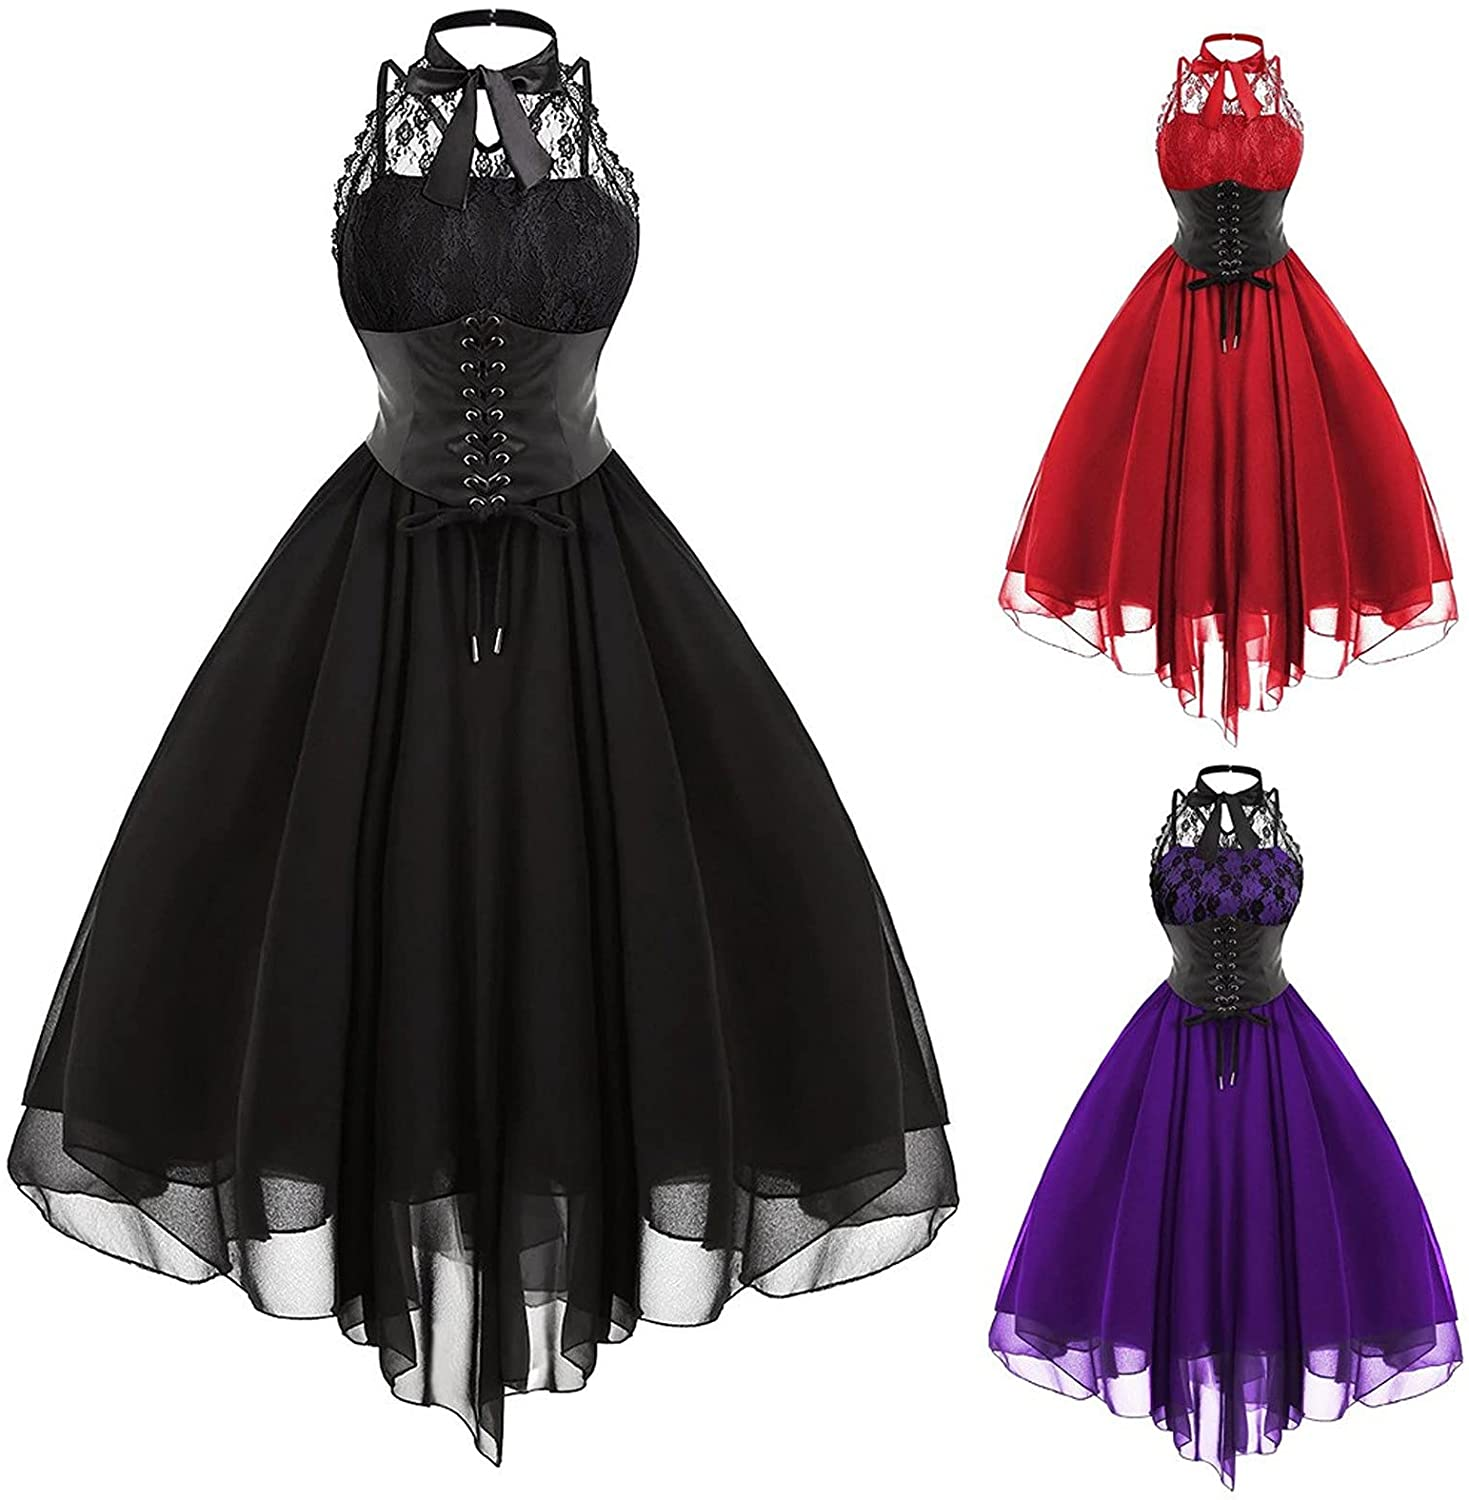 Womens Gothic Cocktail Party Dresses Fashion Casual Sleeveless Spaghetti Strap Tie Waist Sexy Lace Club Evening Dress